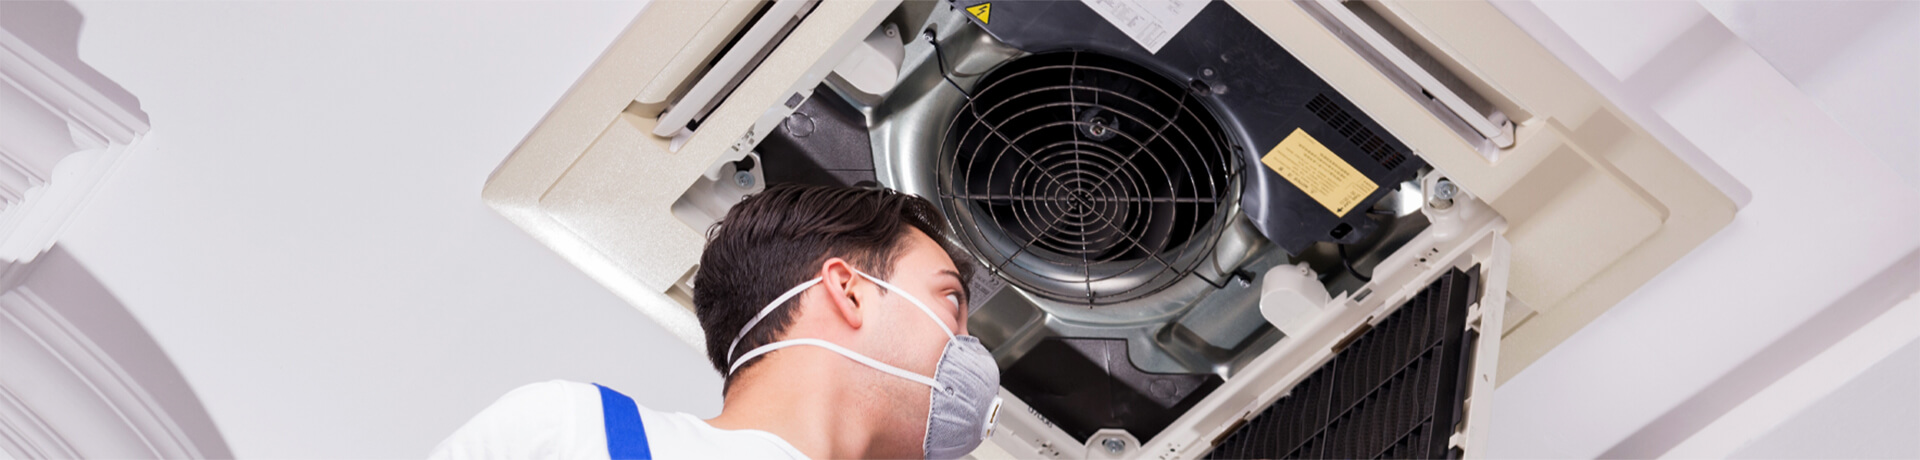 Heat Repair Service - Ductworks Heating and Cooling